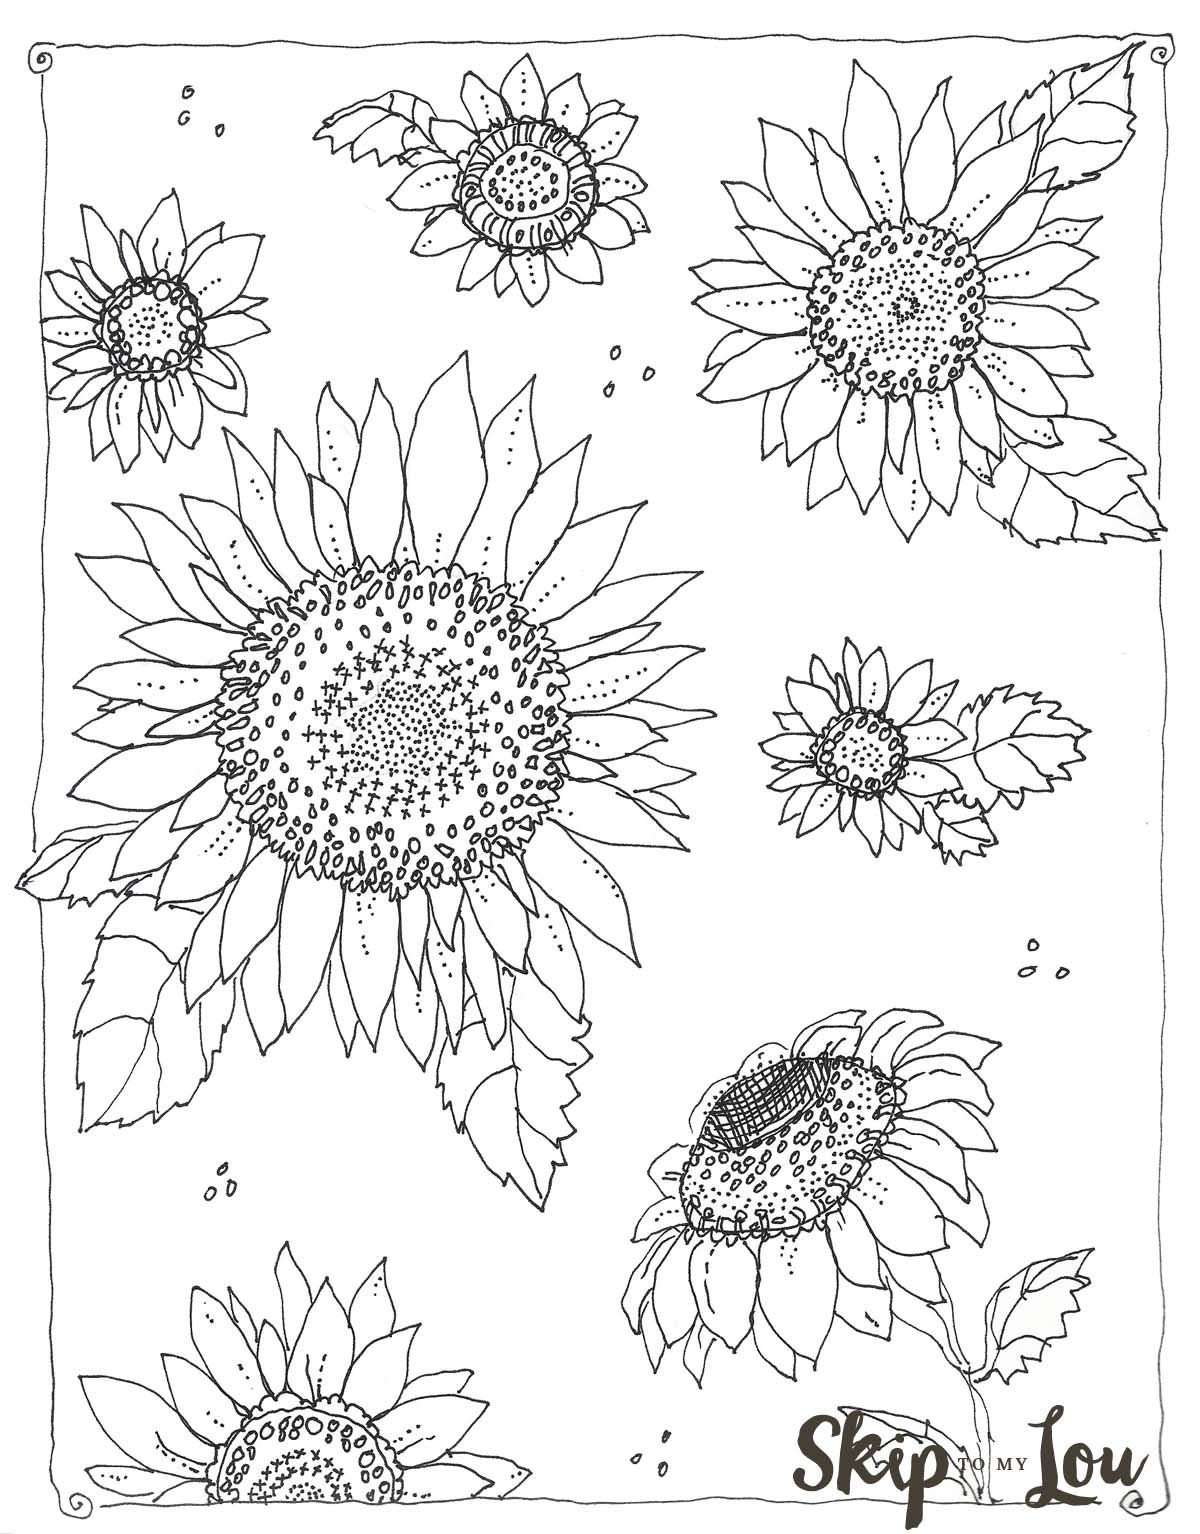 Kansas Day free sunflower coloring page Sunflower